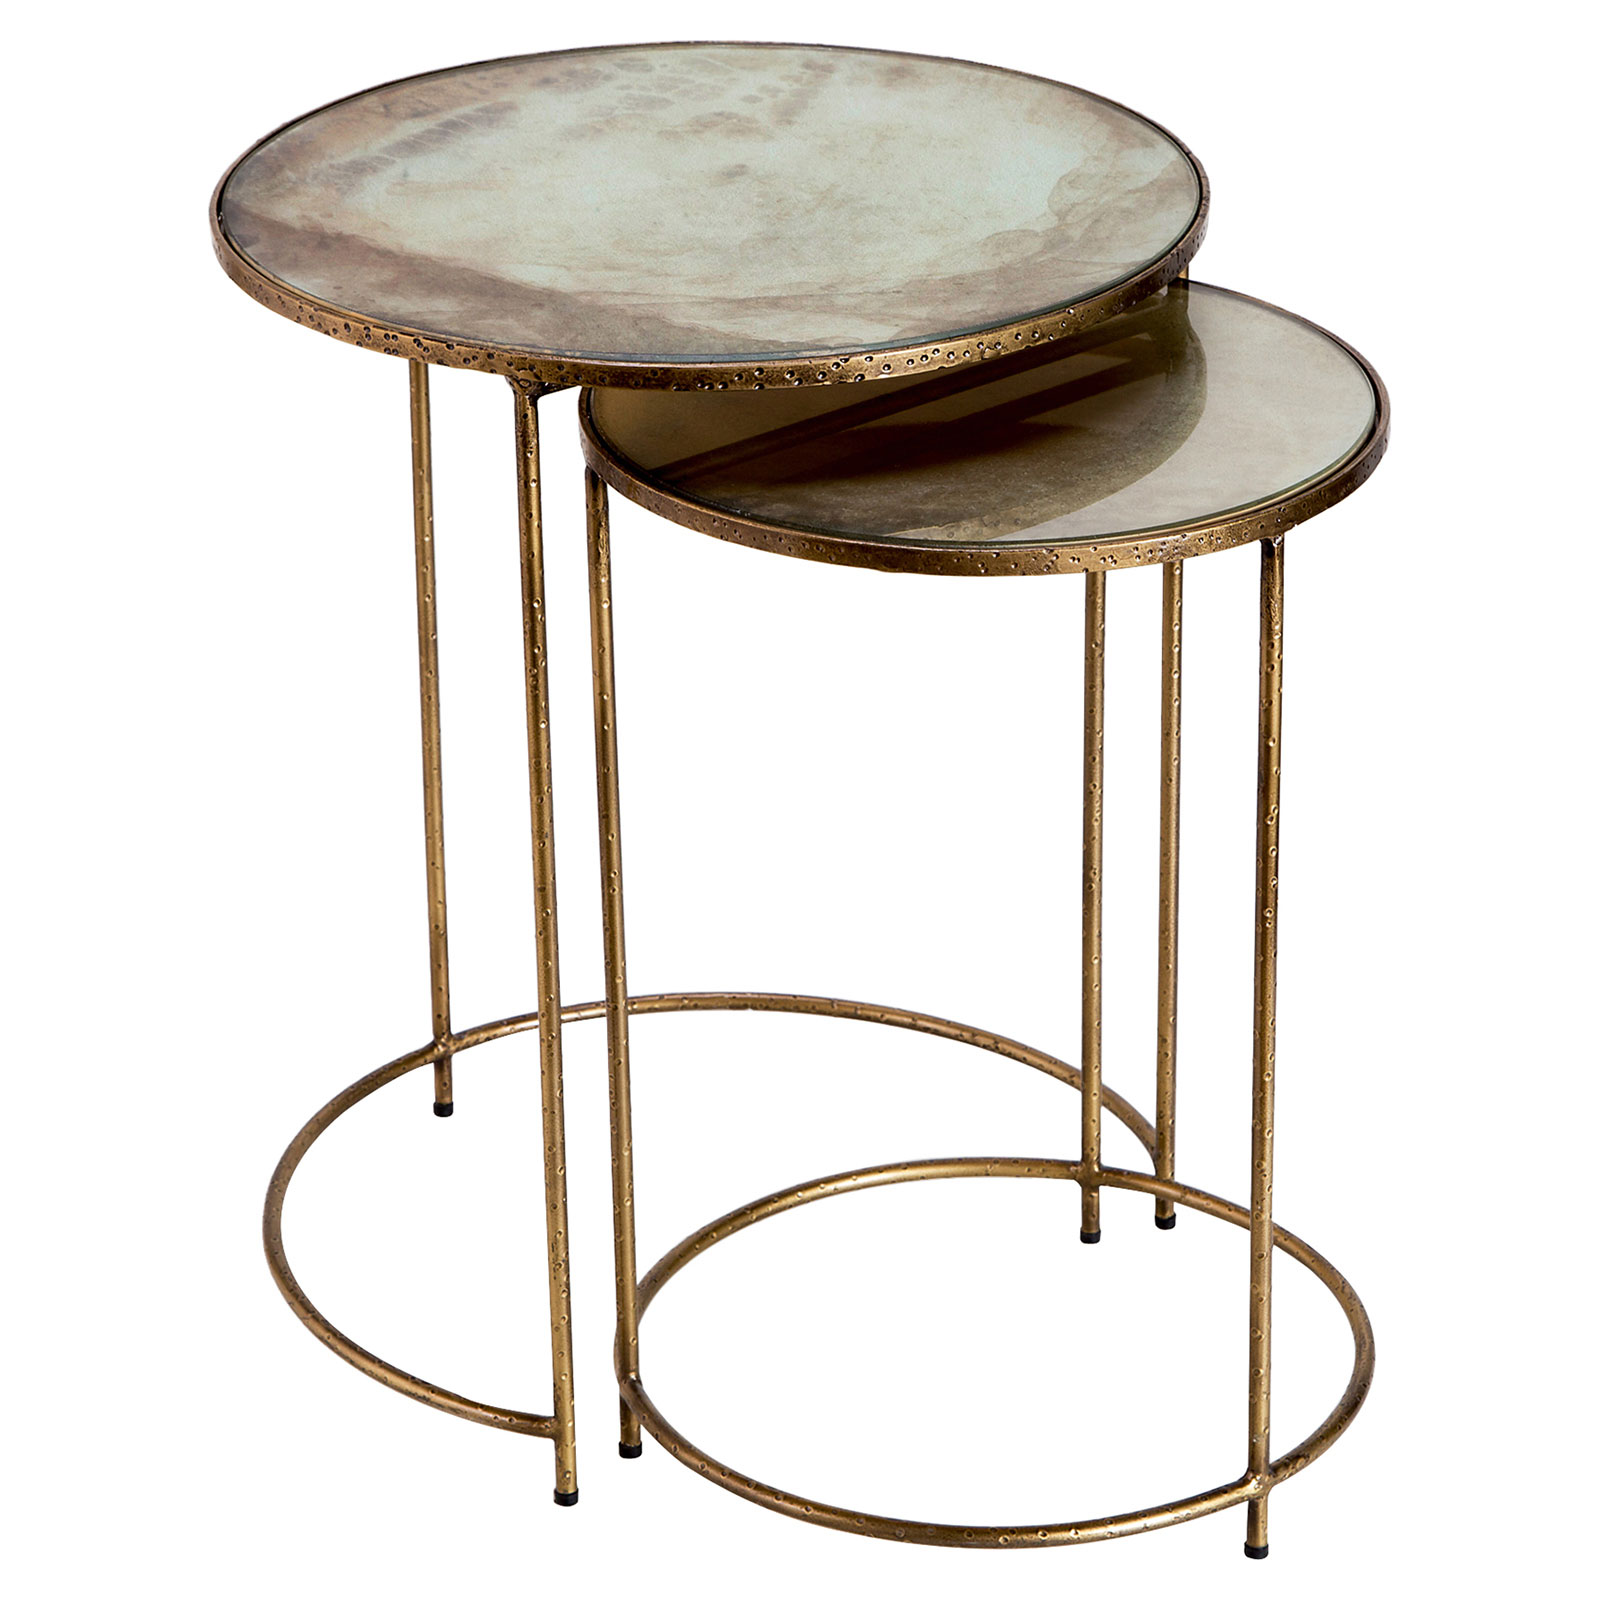 product 12756 Top Result 50 Best Of Gold and Glass Coffee Table Image 2017 Ksh4